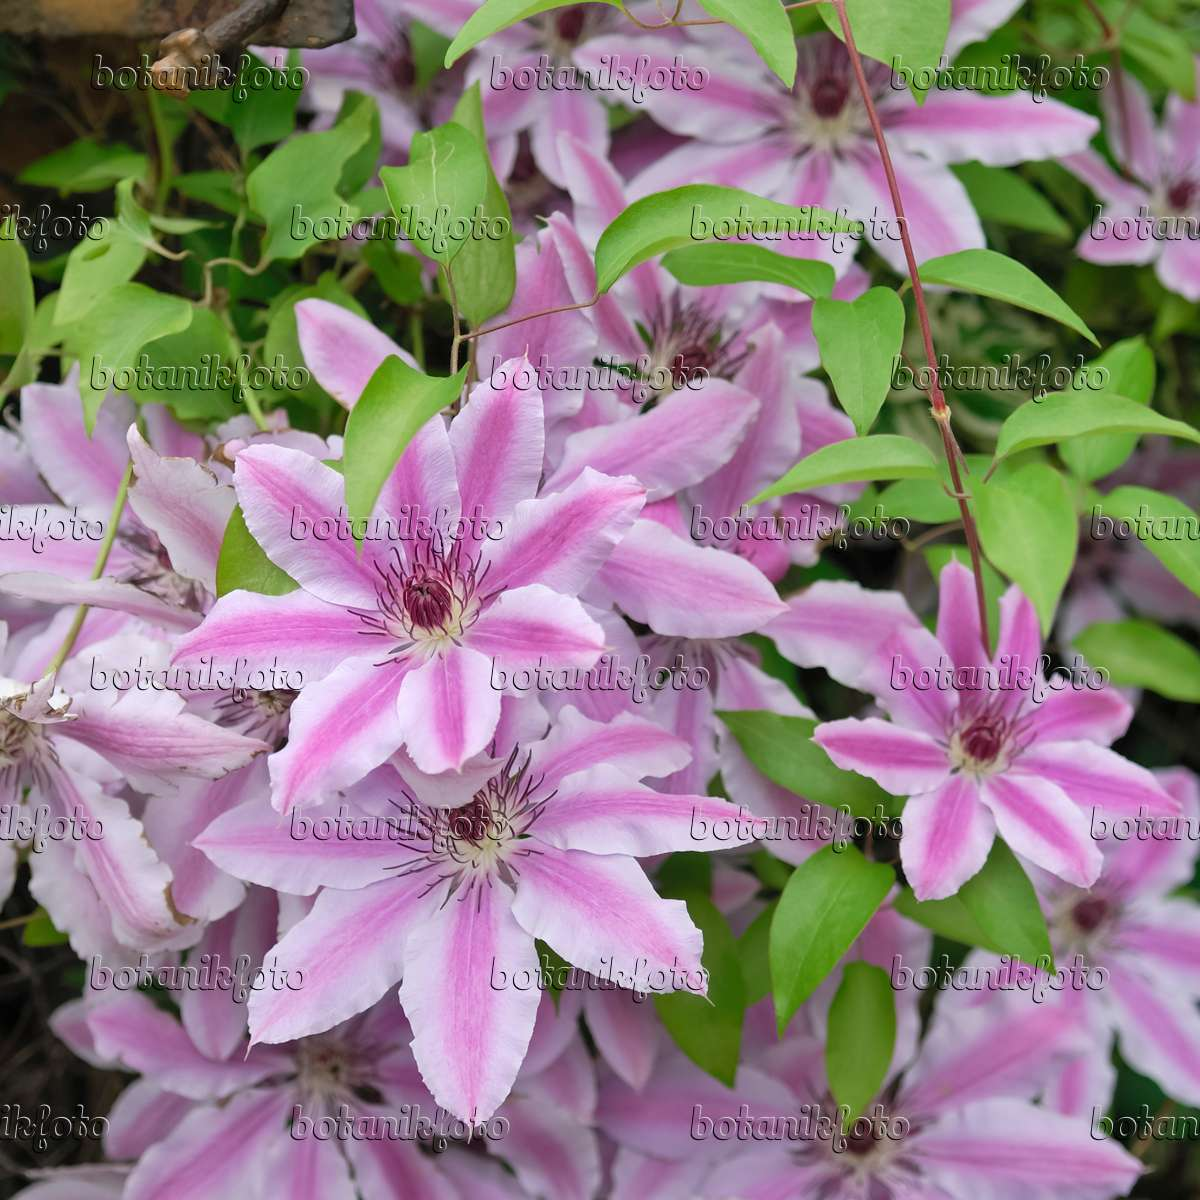 image clematis clematis nelly moser 471377 images and videos of plants and gardens. Black Bedroom Furniture Sets. Home Design Ideas